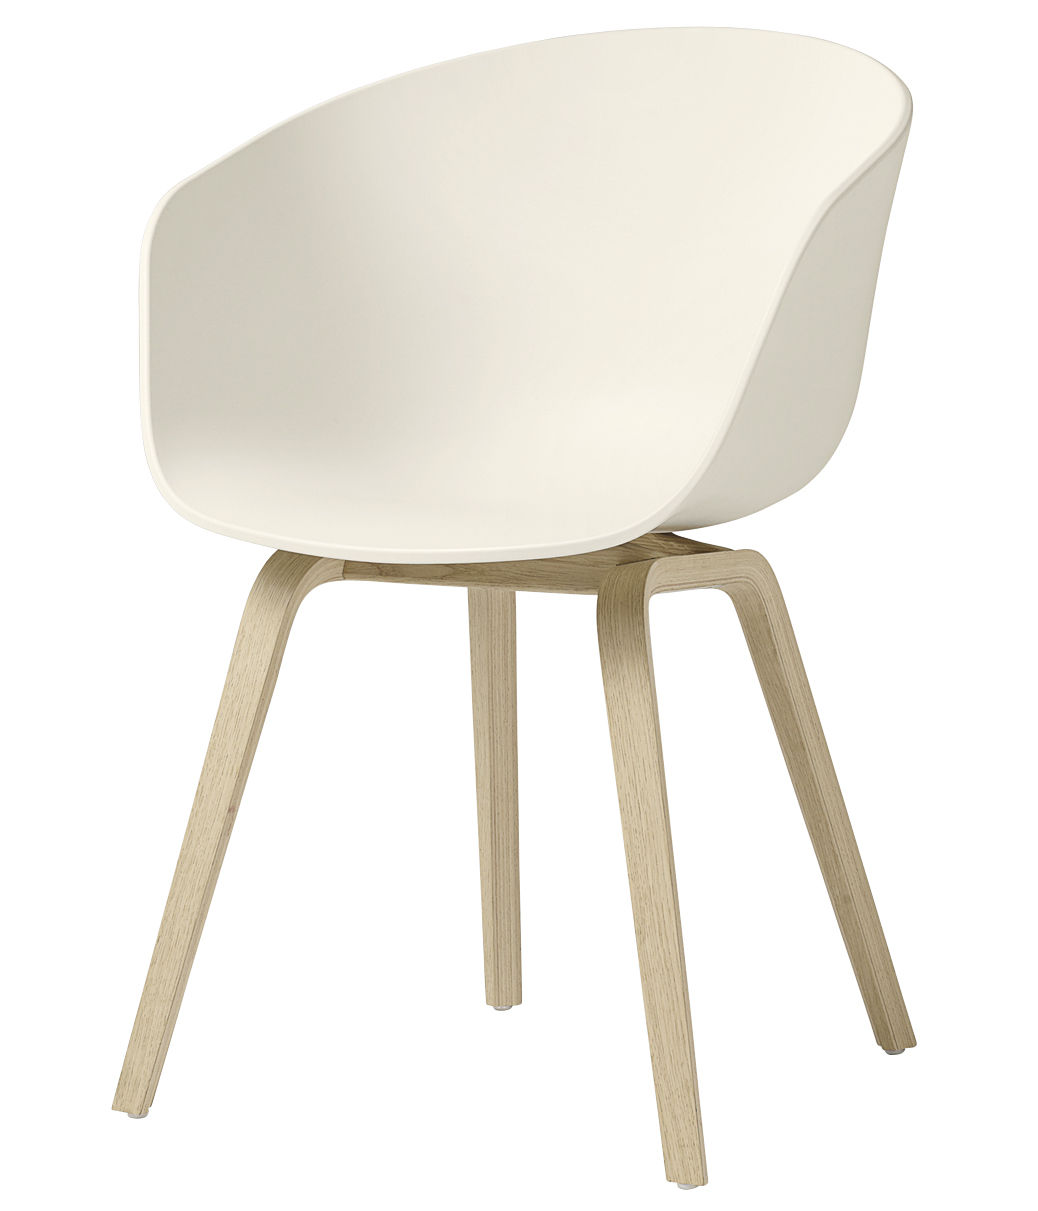 chair aac22 armchair plastic wood legs beige wood legs by hay